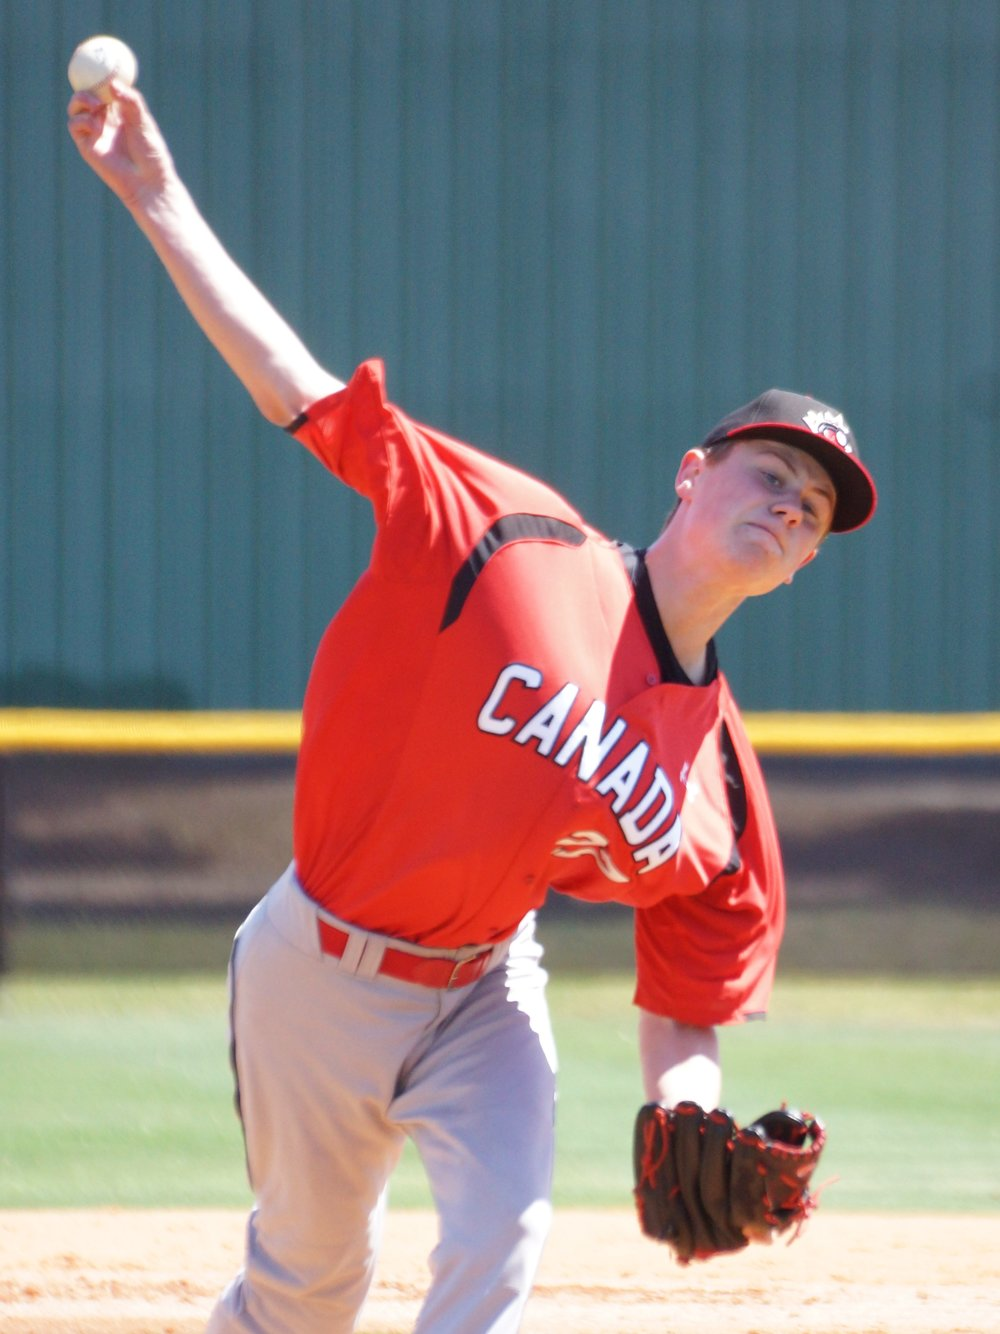 Great Lake Canadians grad Griffin Hassall (Newmarket, Ont.) will start for Canada when they take on Nicaragua at the U18 Baseball World Cup in Thunder Bay, Ont., on Wednesday. Photo Credit: Eddie Michels